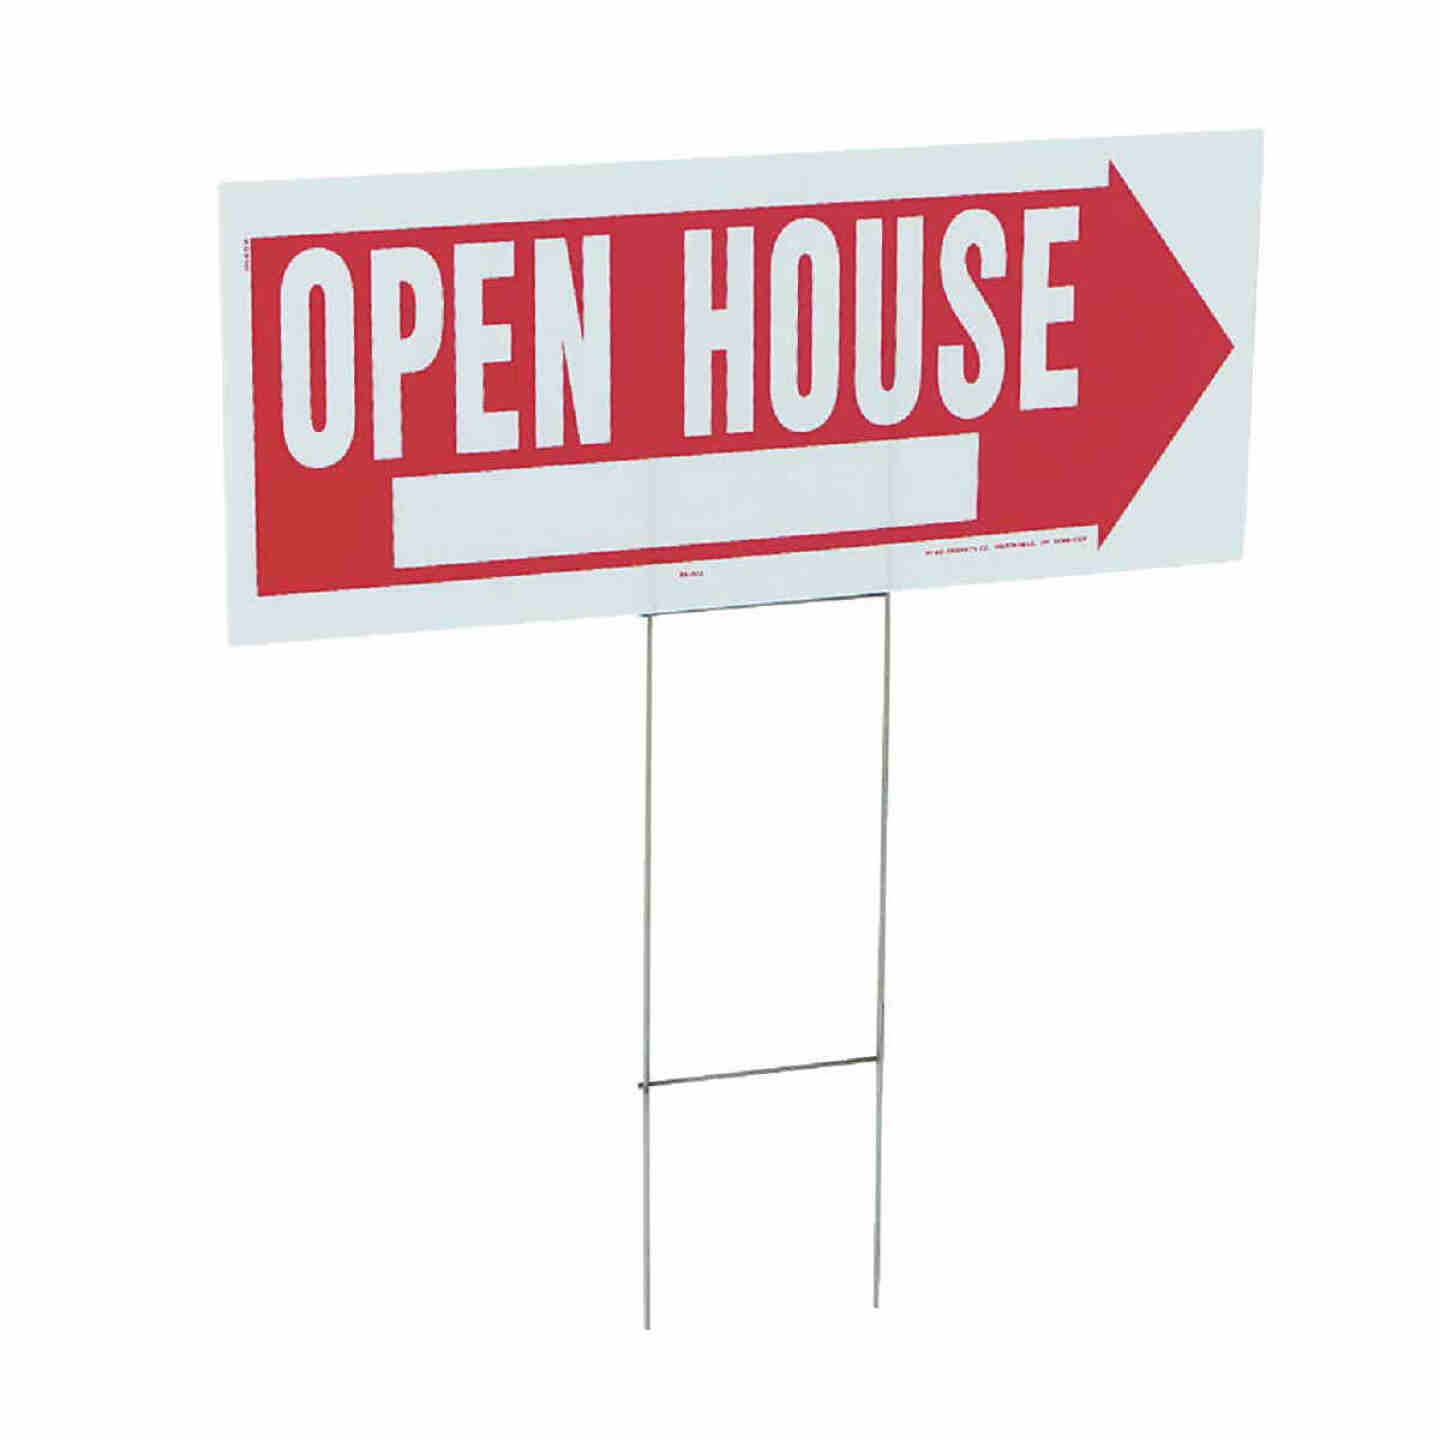 Hy-Ko Corrugated Plastic Sign, Open House Image 1